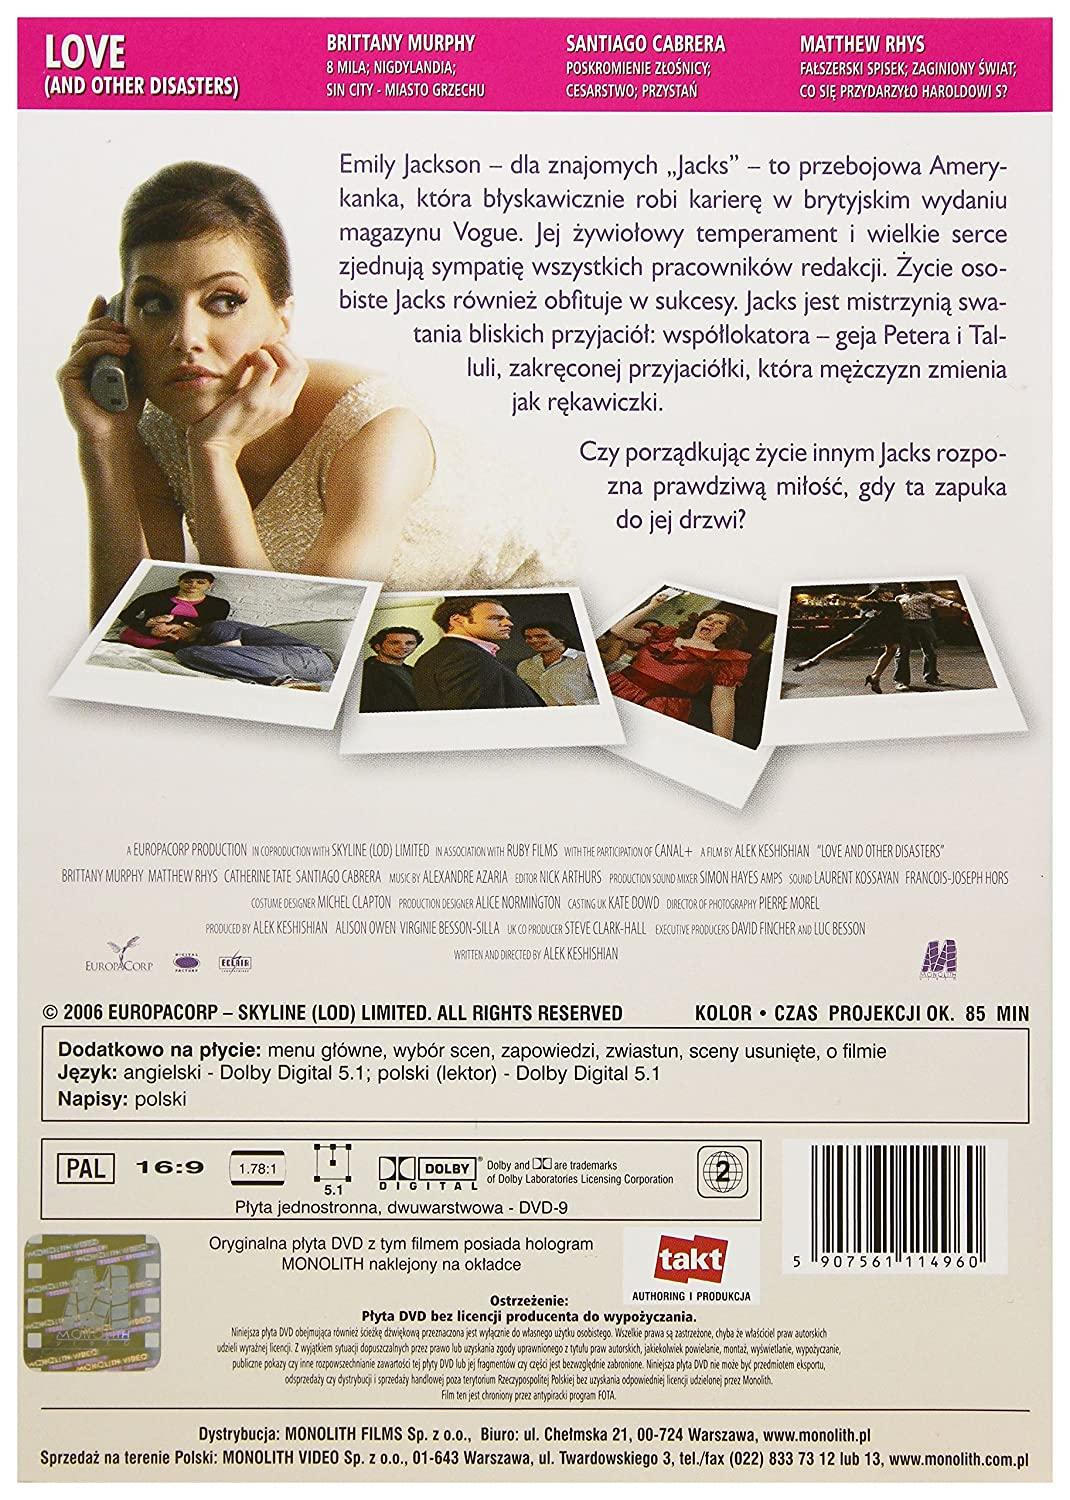 Amazon.com: Love and Other Disasters [DVD] (English audio): Brittany Murphy, Matthew Rhys, Santiago Cabrera, Samantha Bloom, Catherine Tate, ...